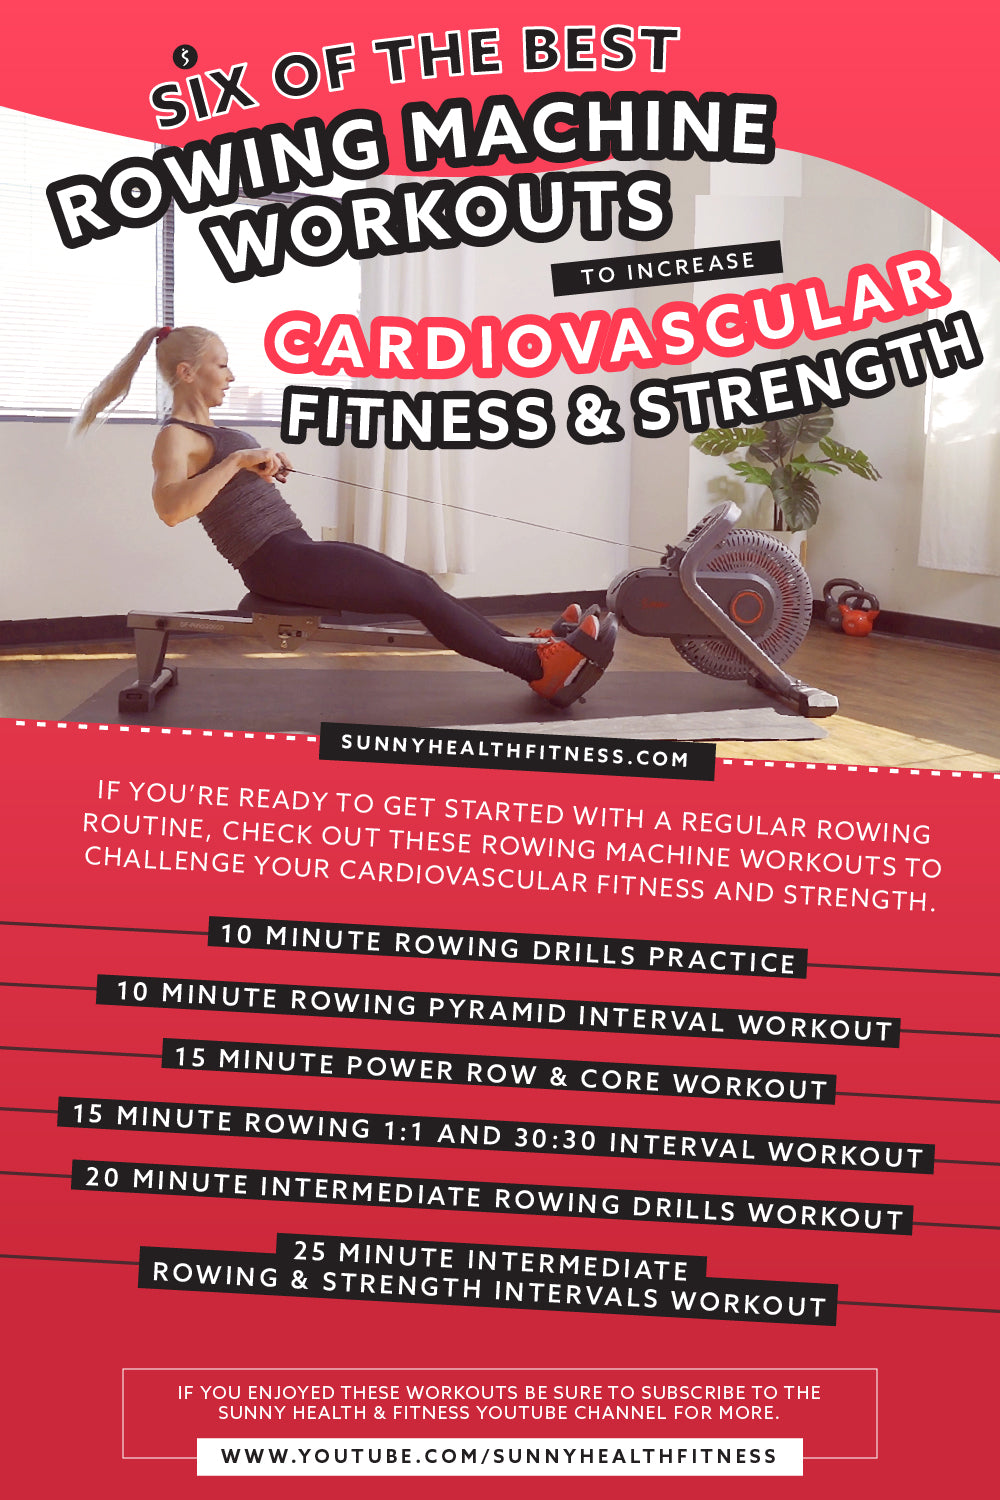 6 Best Rowing Machine Workouts Infographic